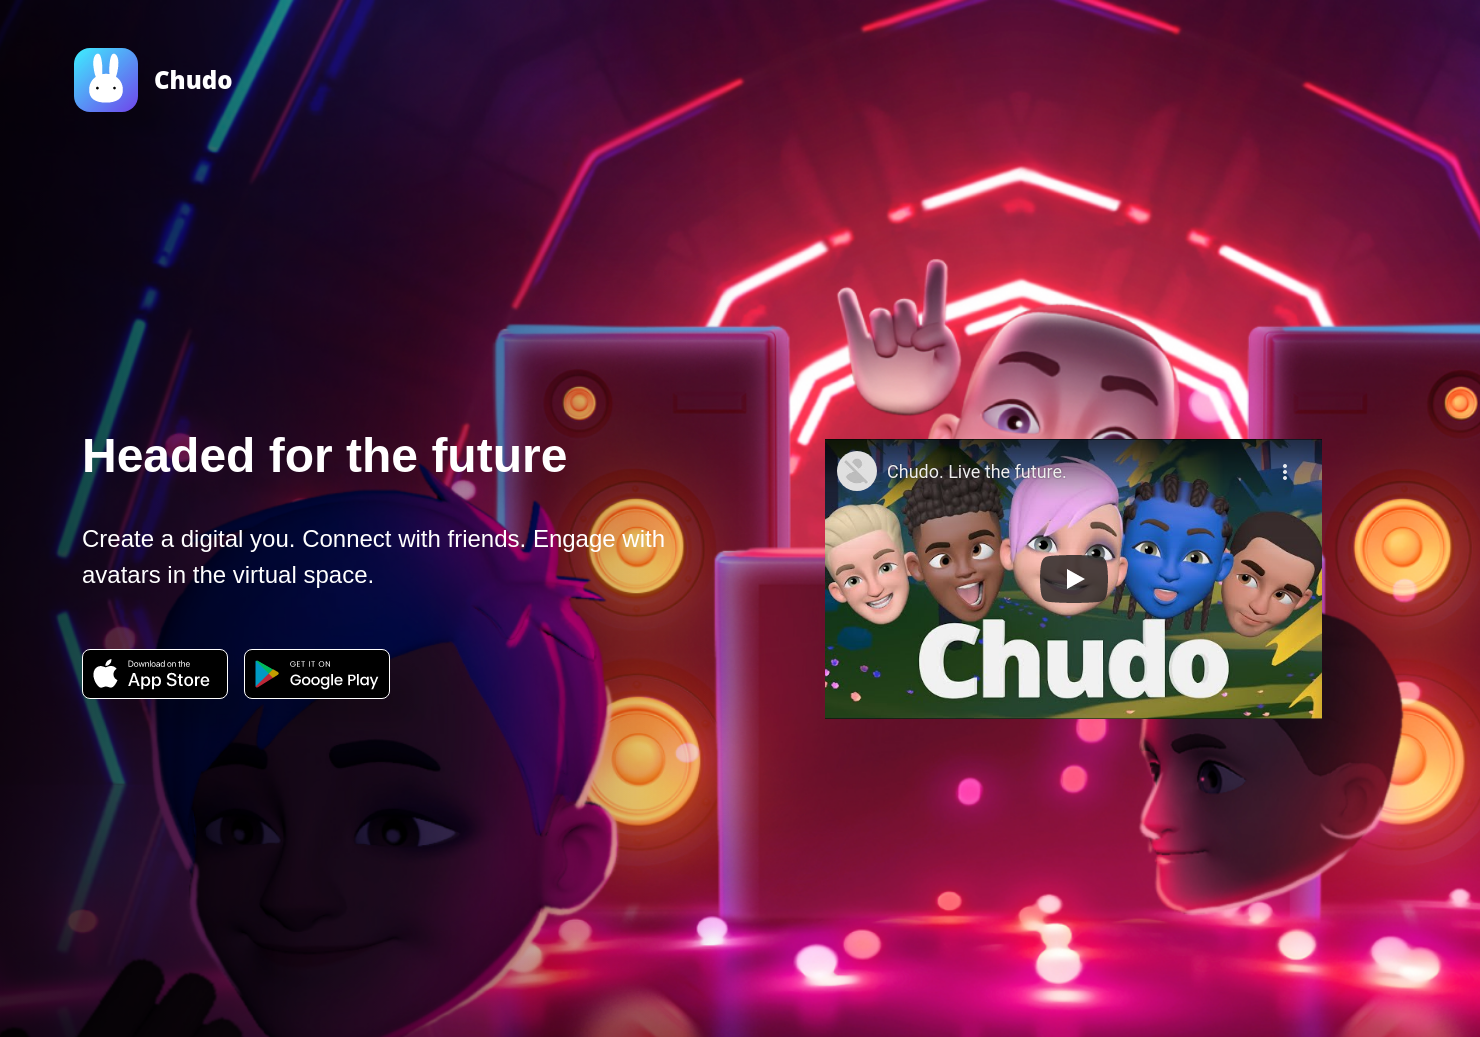 Chudo Virtual Spaces